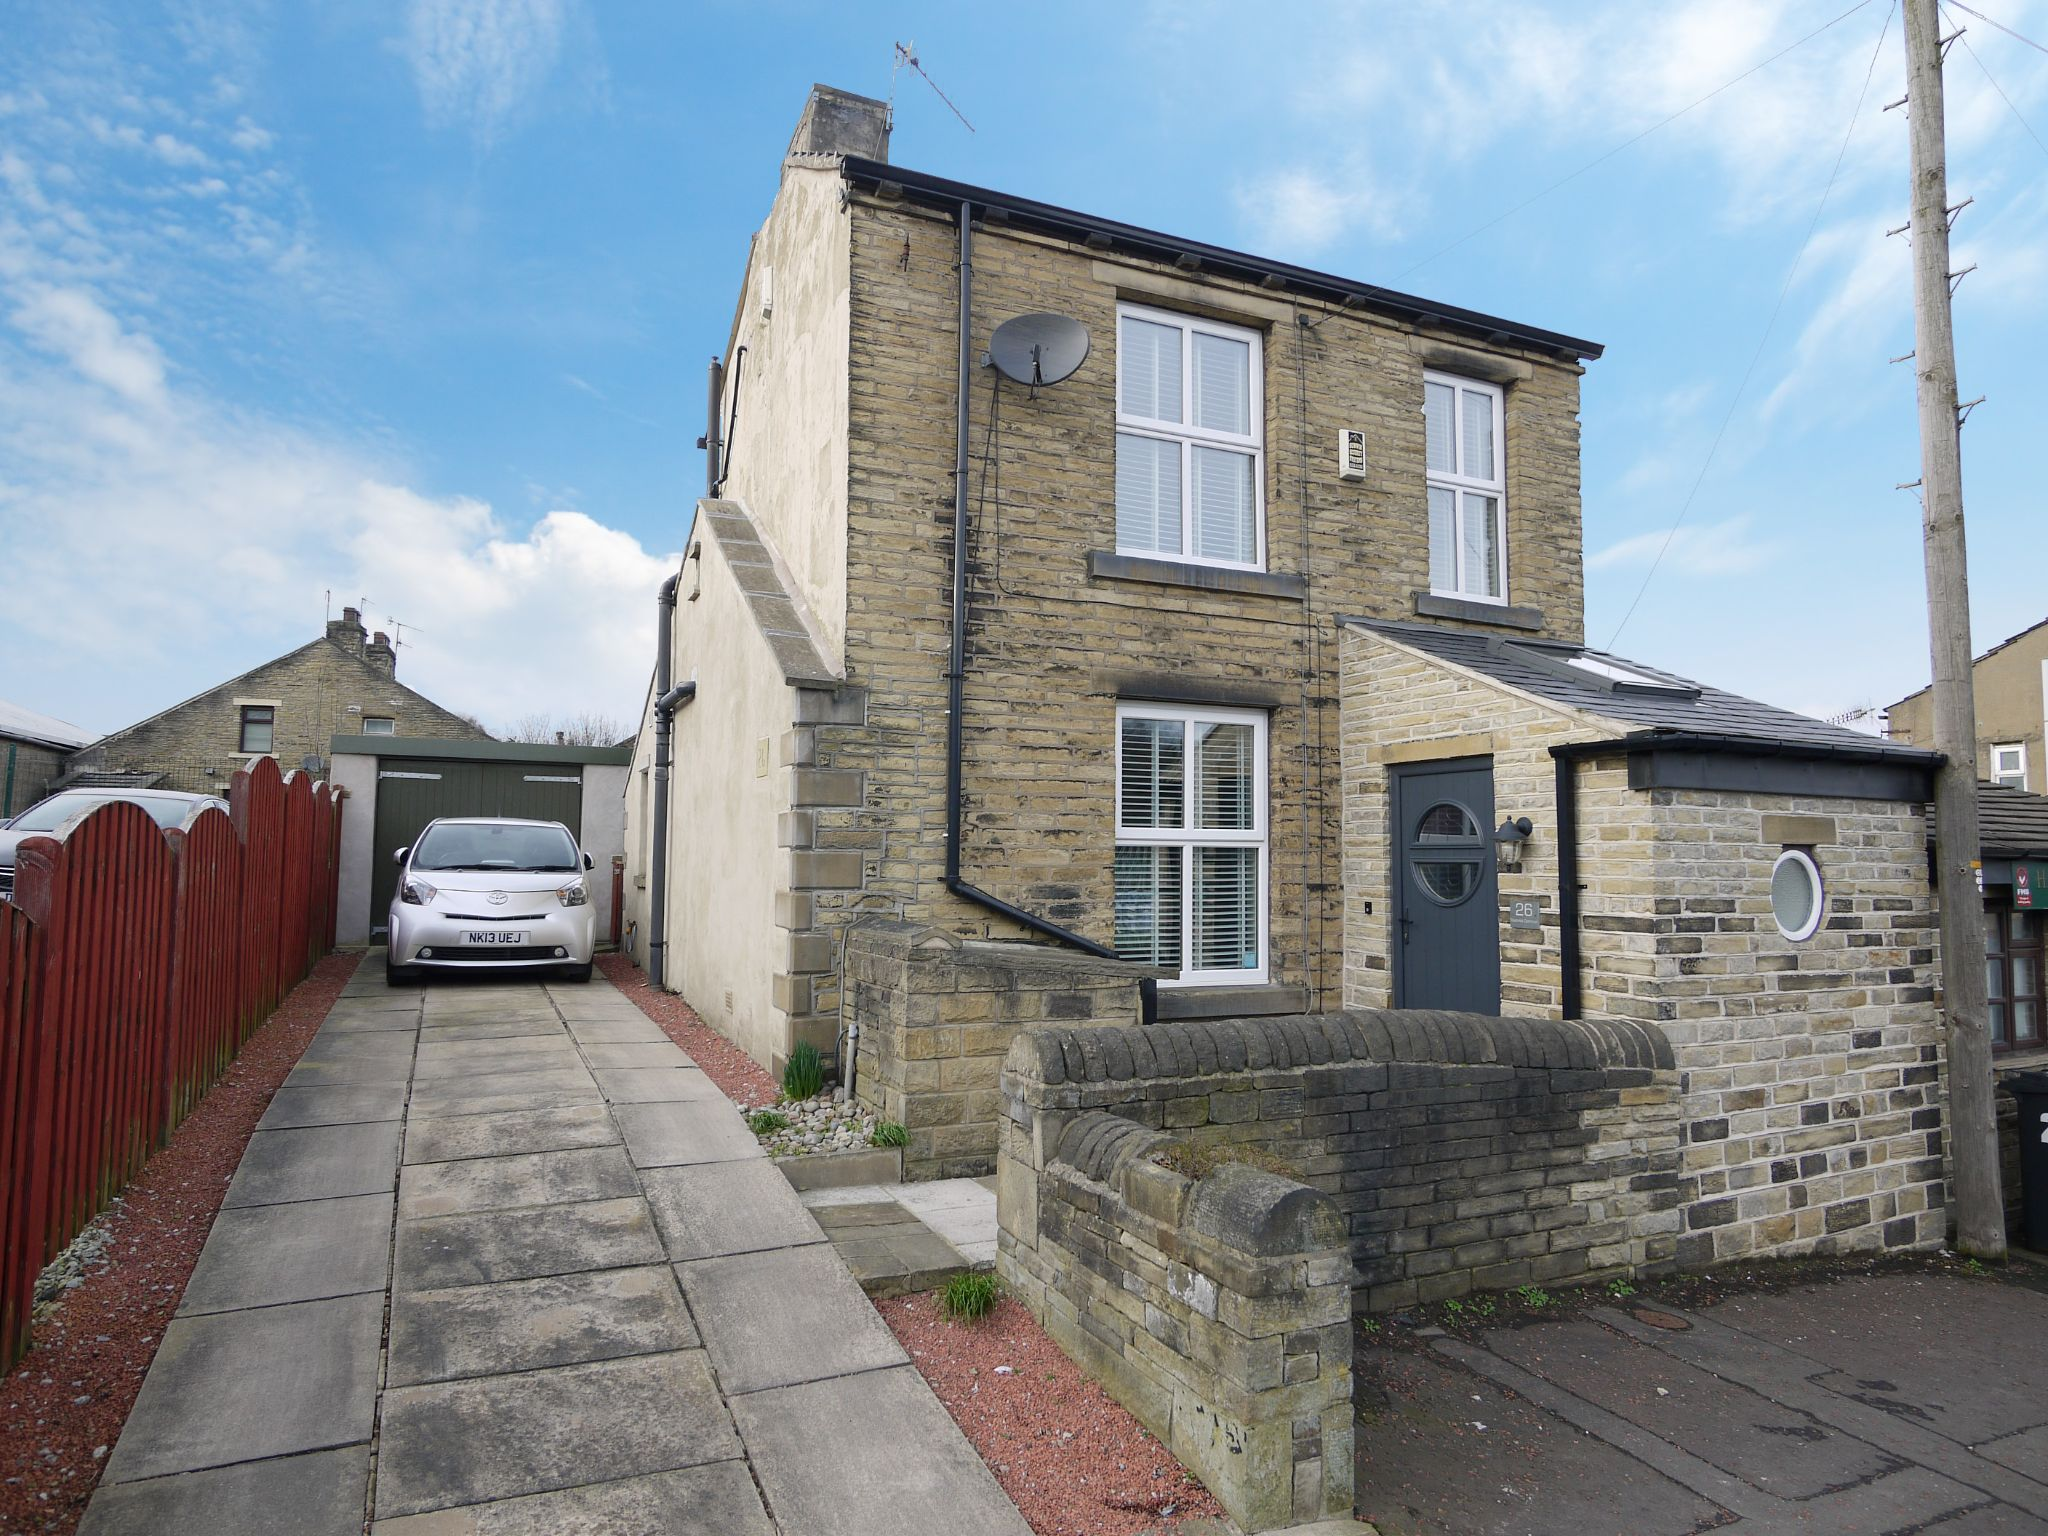 1 bedroom detached house For Sale in Brighouse - Photograph 1.